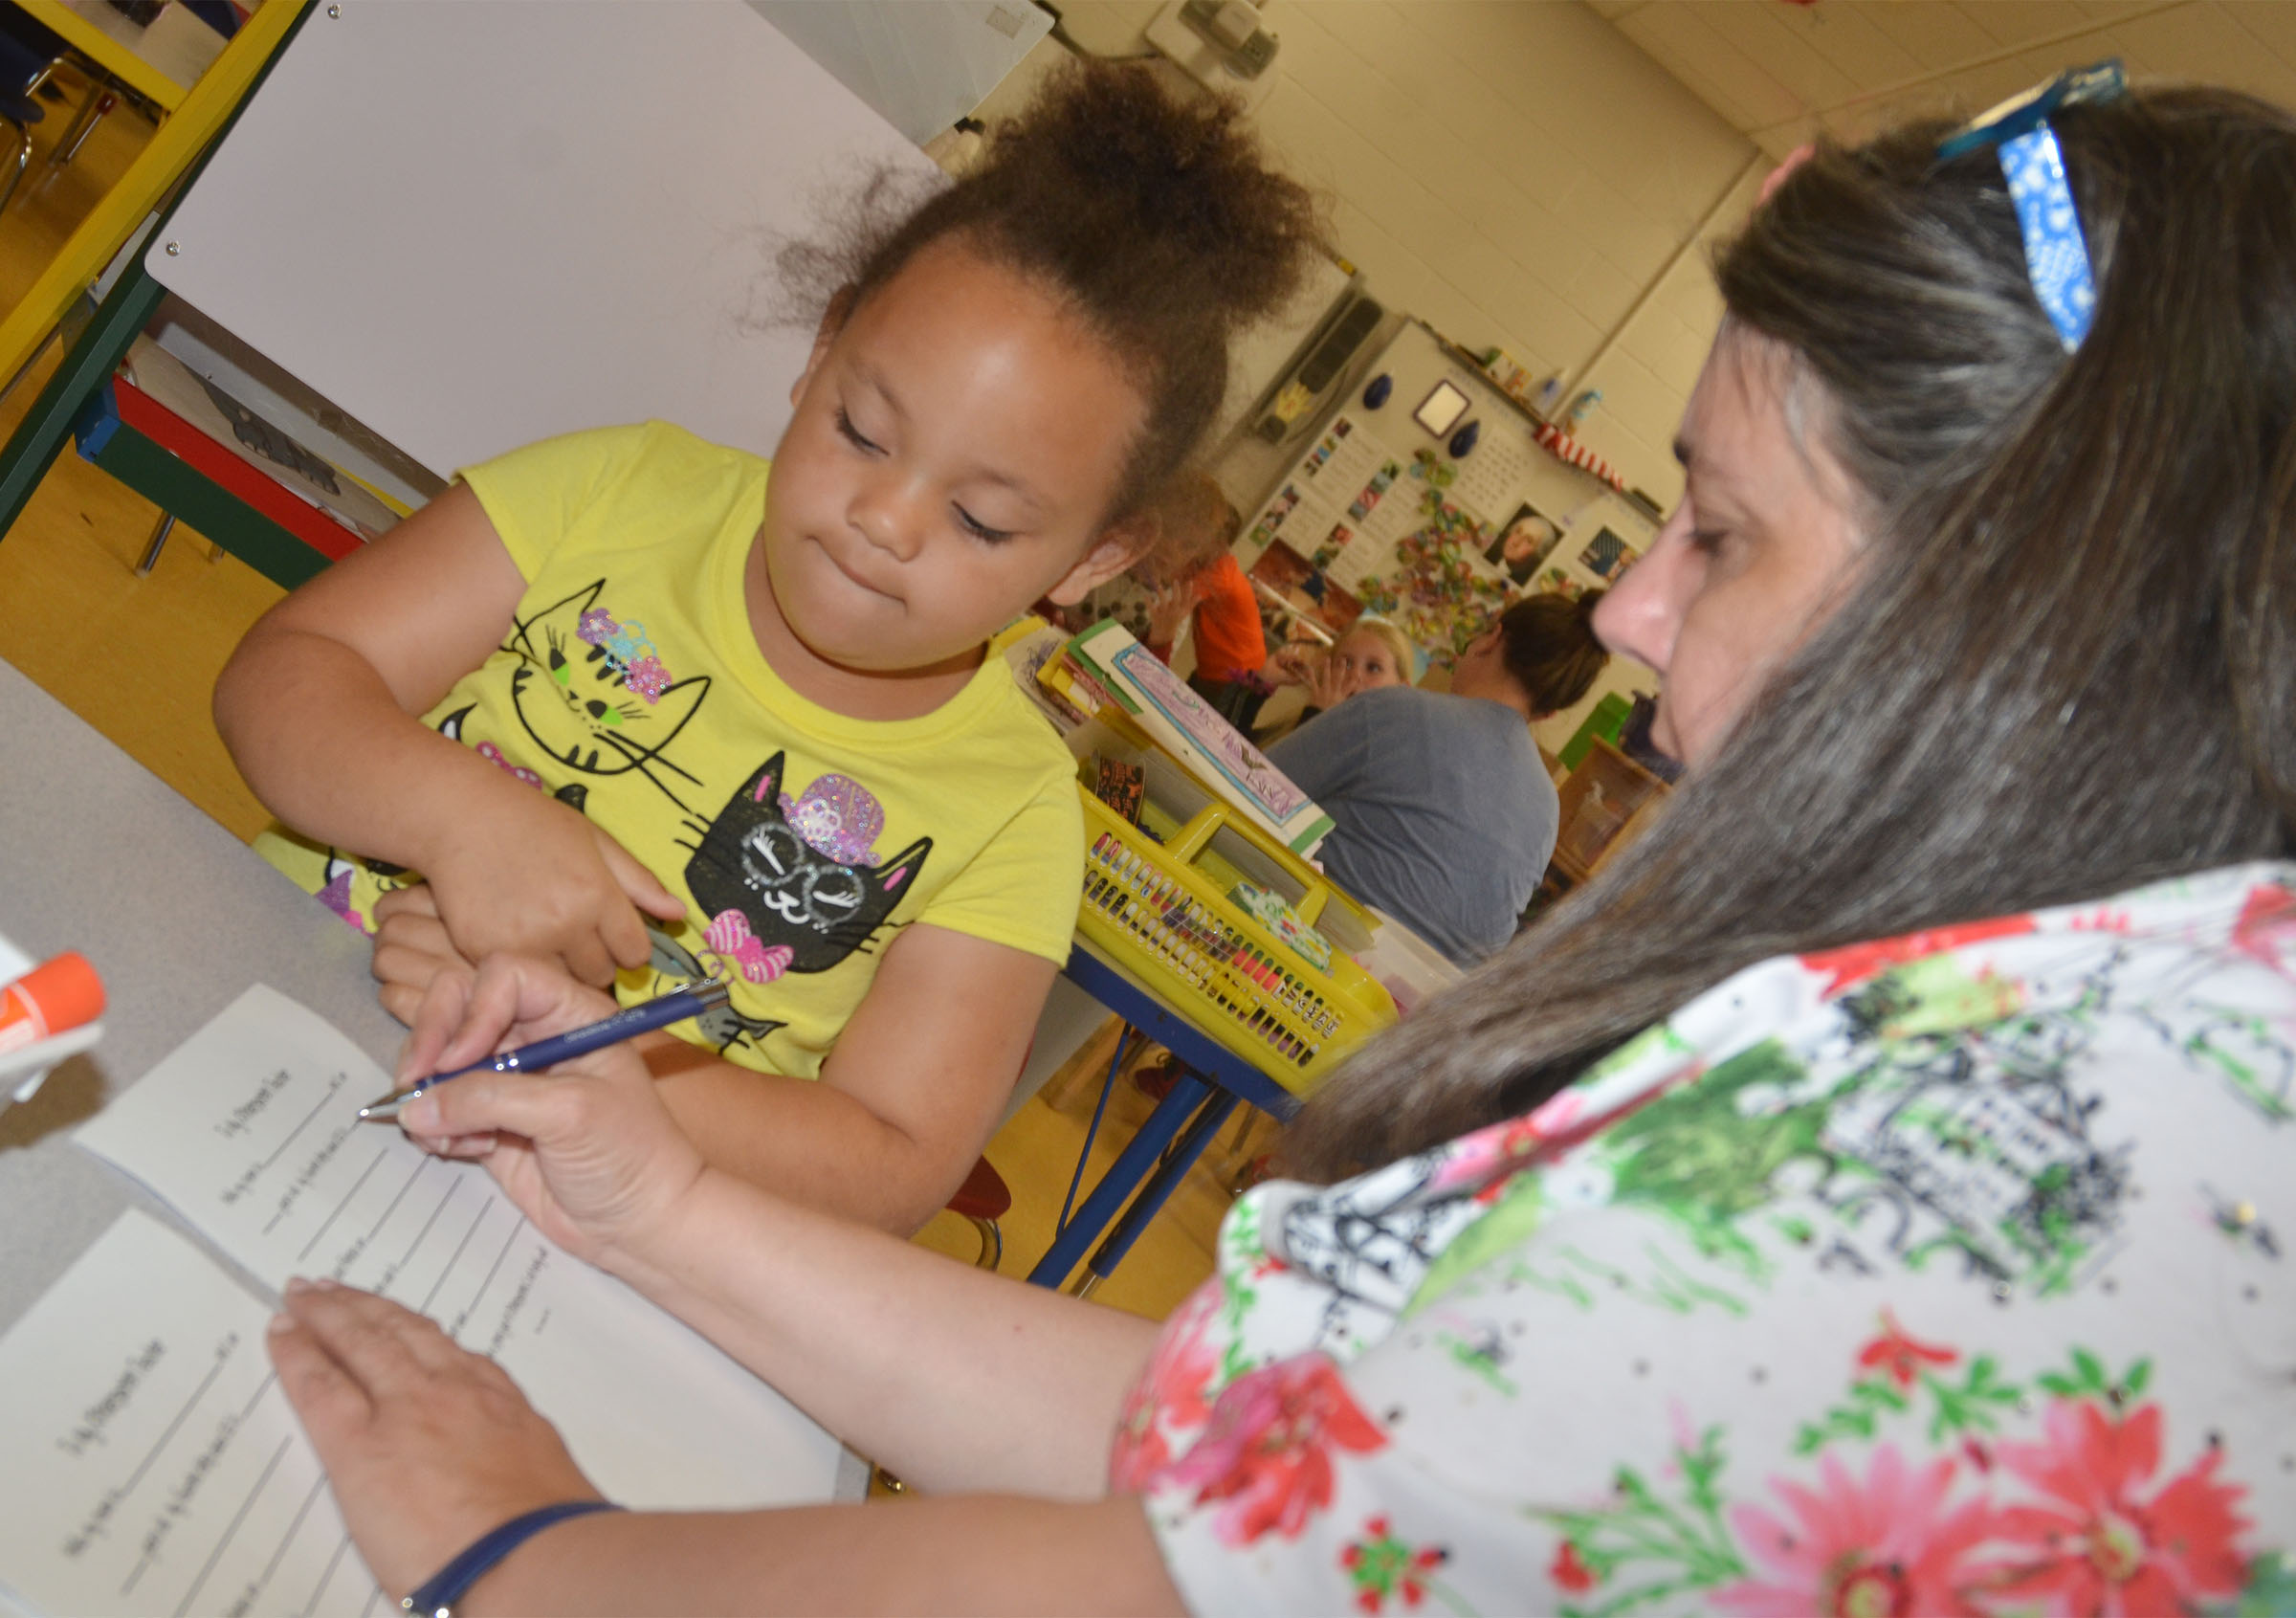 CES preschool student Lillian Merriweather answers questions with teacher Sherry Cowherd as they write Merriweather's letter to her kindergarten teacher.